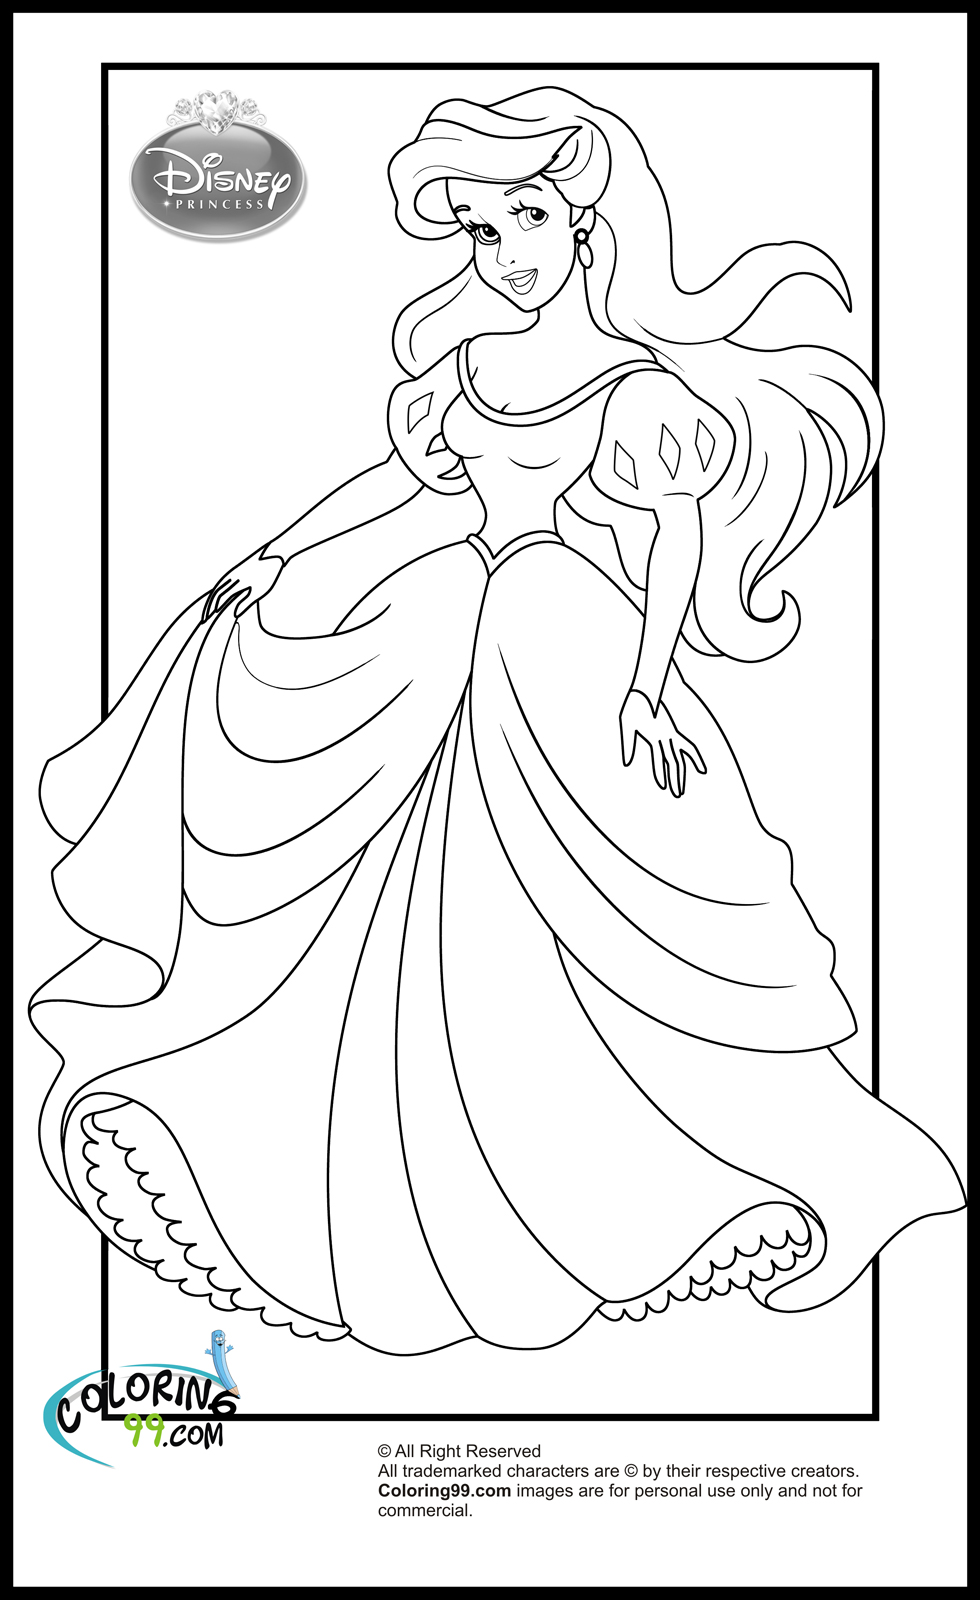 Coloring Book Pages Princess : Disney princess coloring pages minister